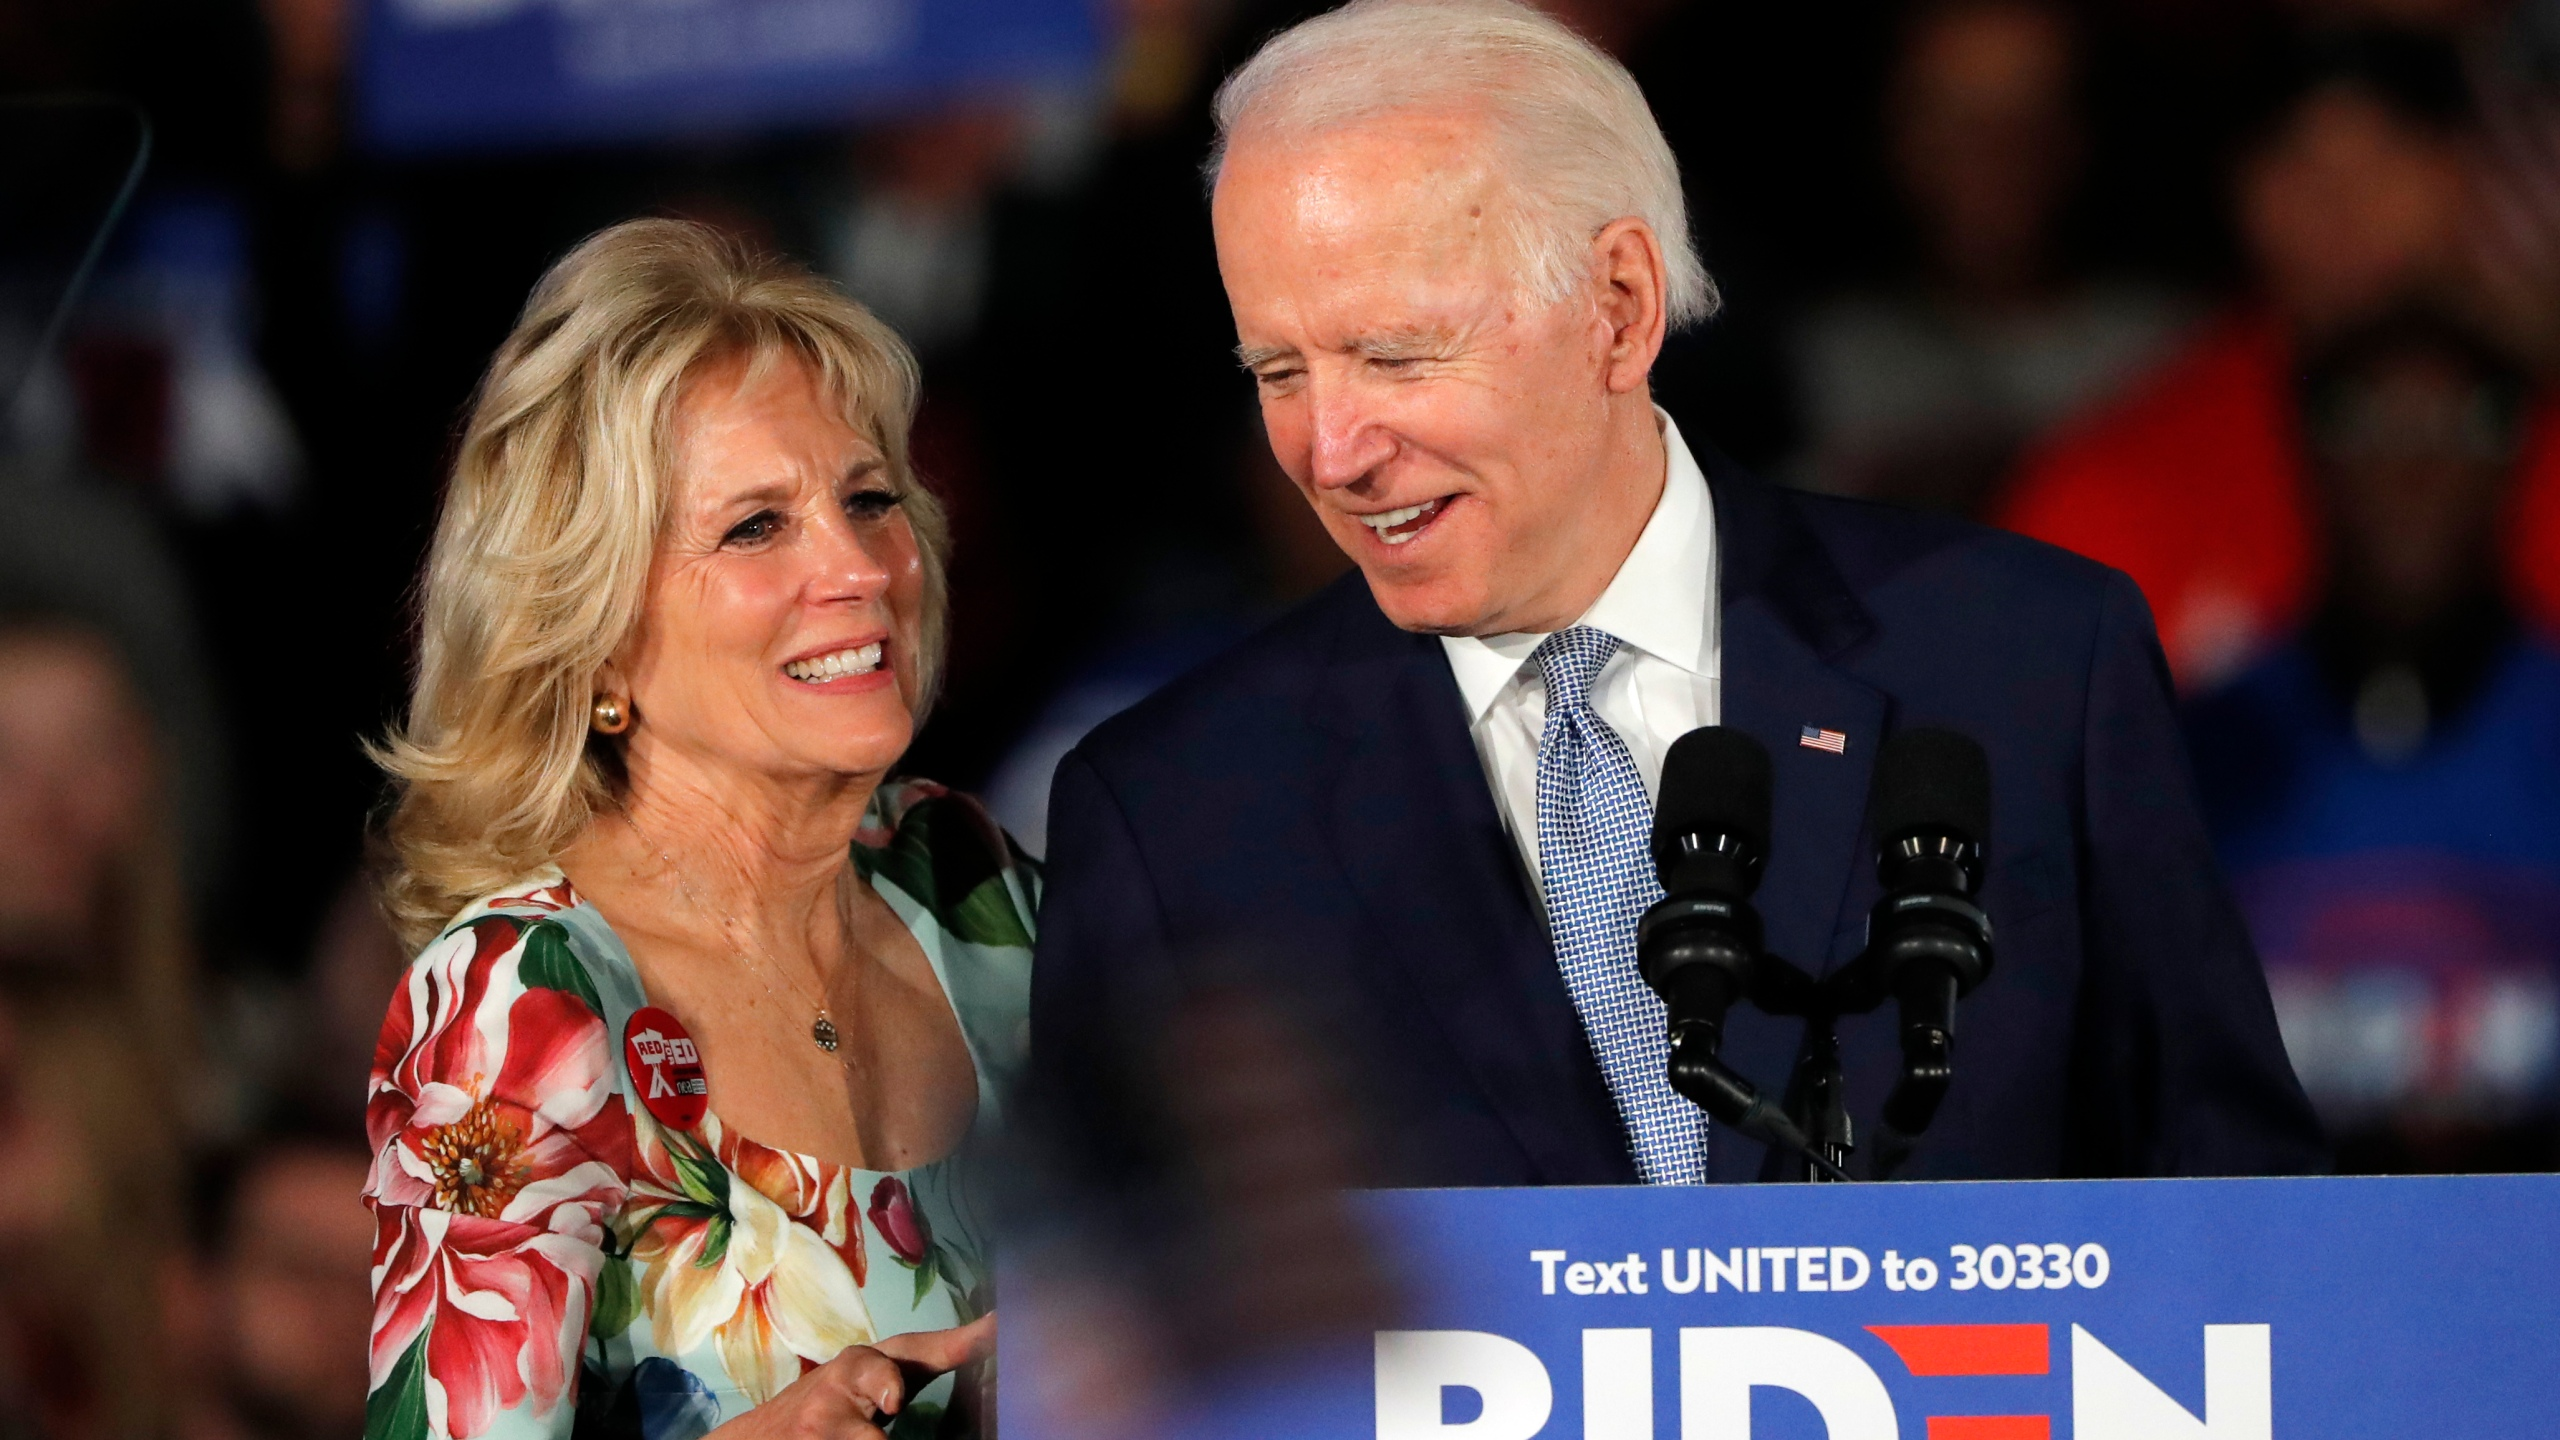 Democratic presidential candidate former Vice President Joe Biden, accompanied by his wife Jill Biden, speaks at a primary night election rally in Columbia, South Carolina, on Feb. 29, 2020. (Gerald Herbert / Associated Press)